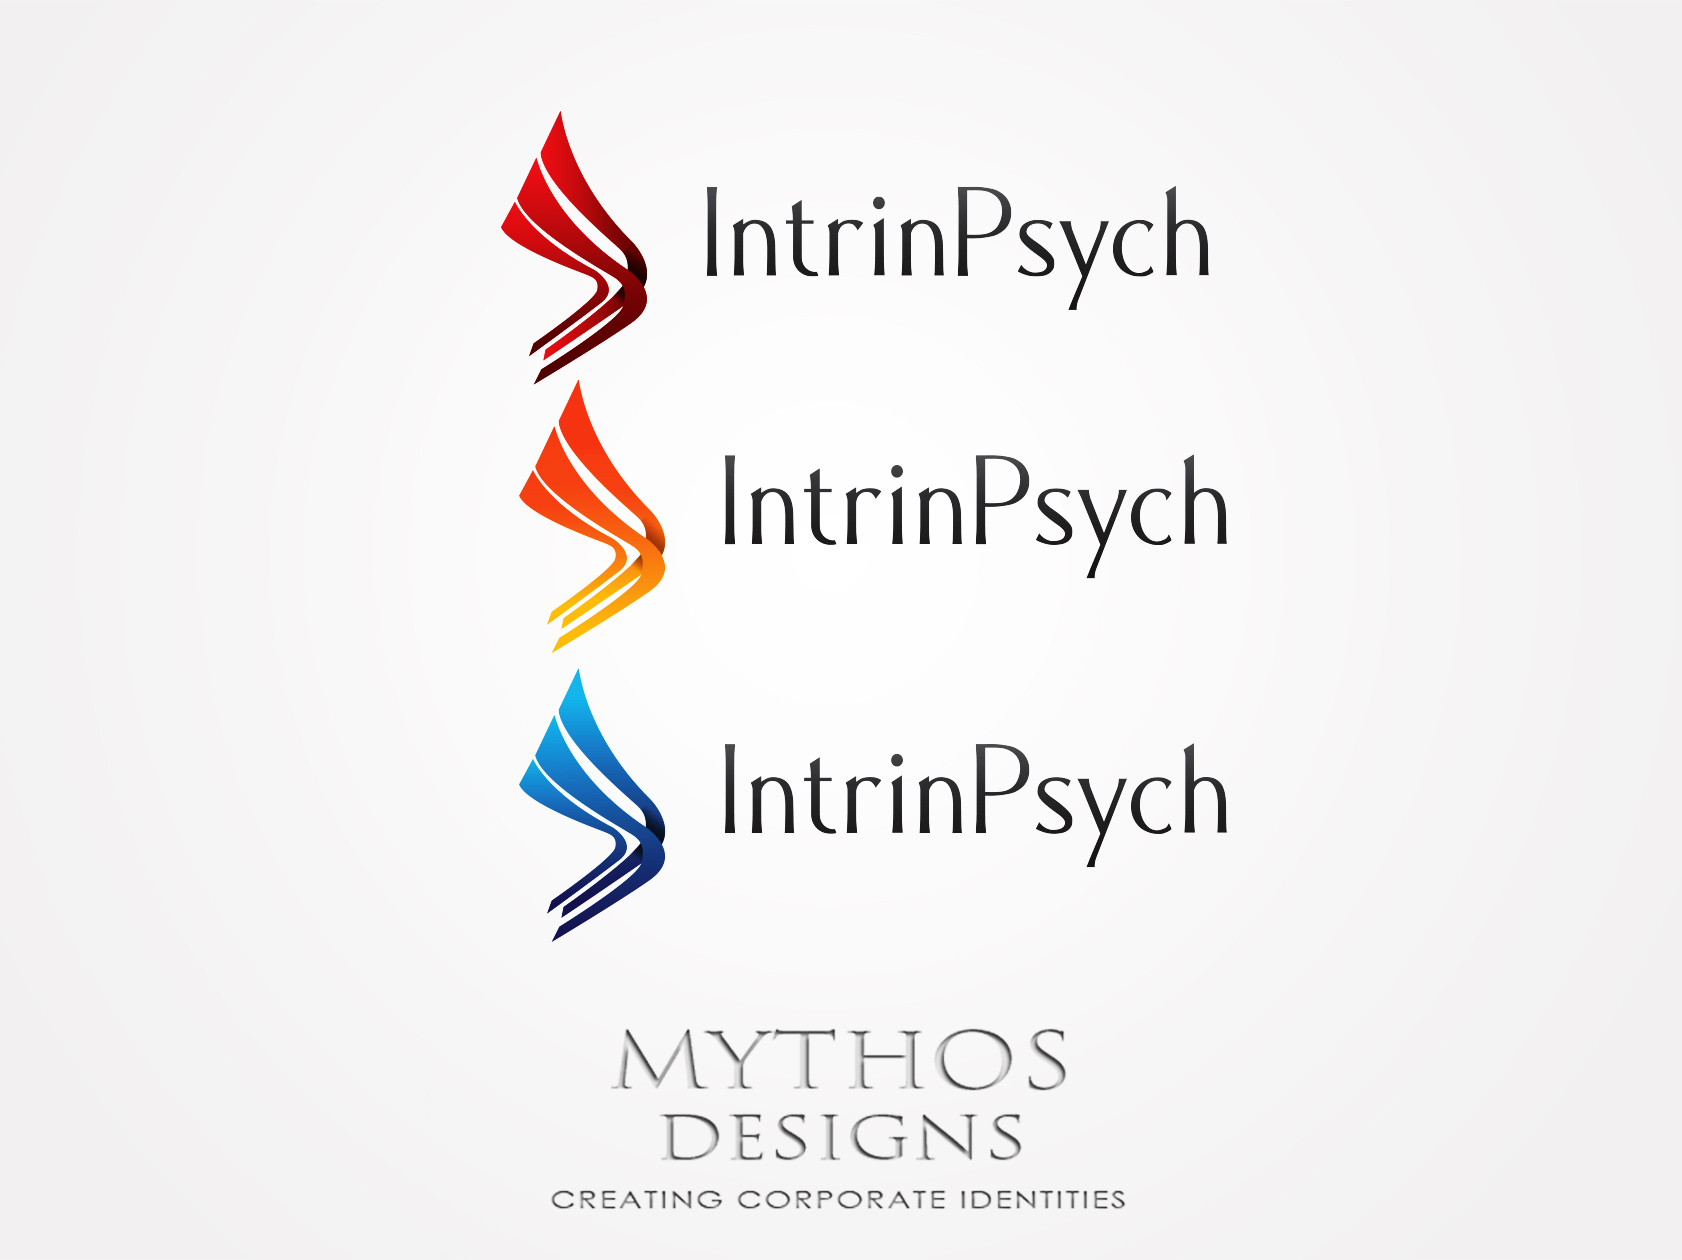 Logo Design by Mythos Designs - Entry No. 27 in the Logo Design Contest New Logo Design for IntrinPsych.